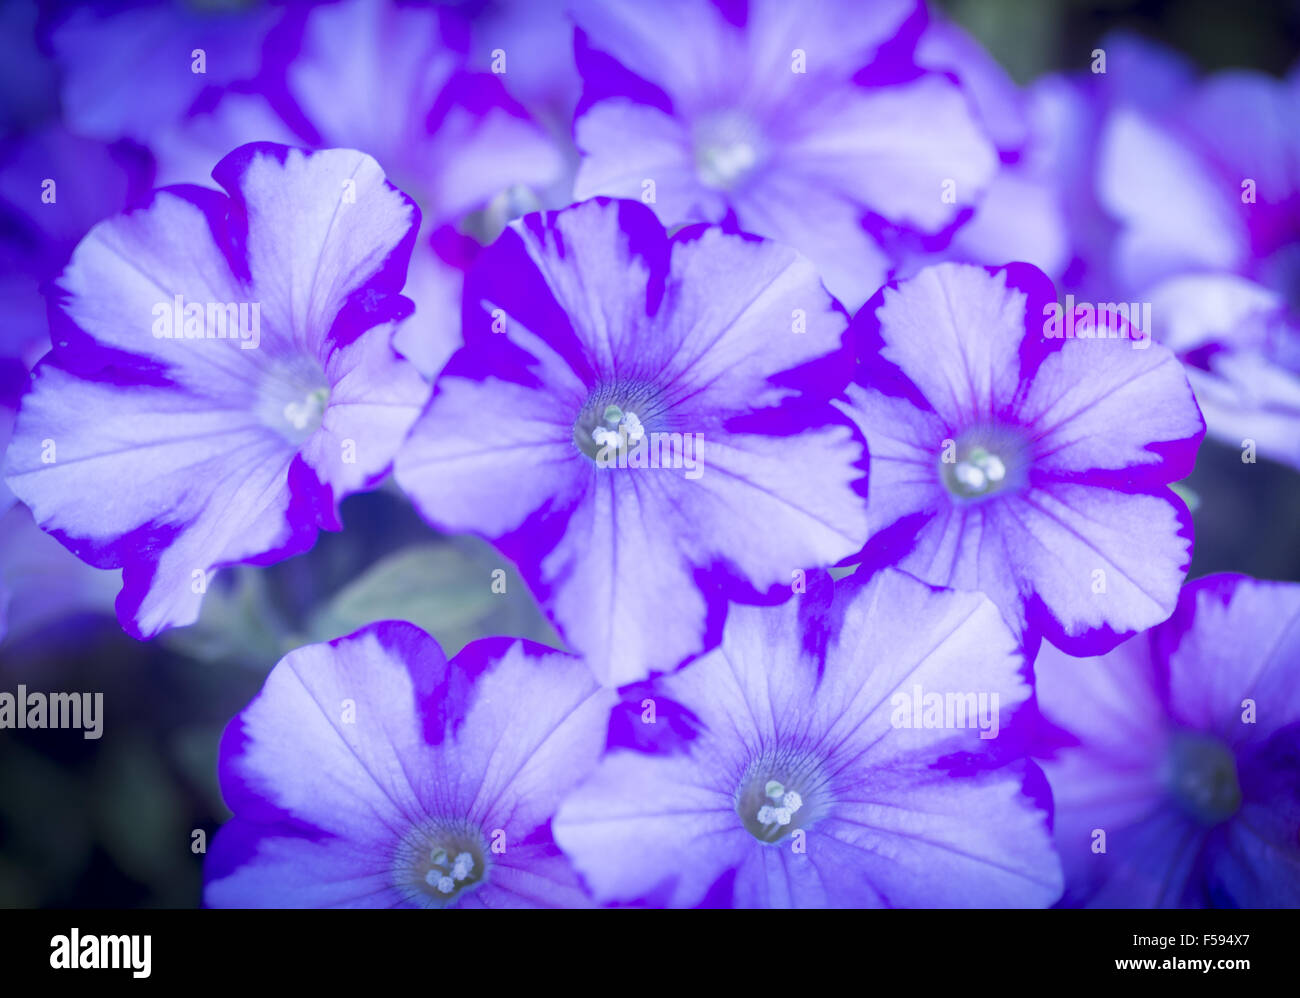 Photo of purple light blue and white flowers in artistic colour photo of purple light blue and white flowers in artistic colour tones with shallow depth of focus and out of focus background shot in garden in madrid mightylinksfo